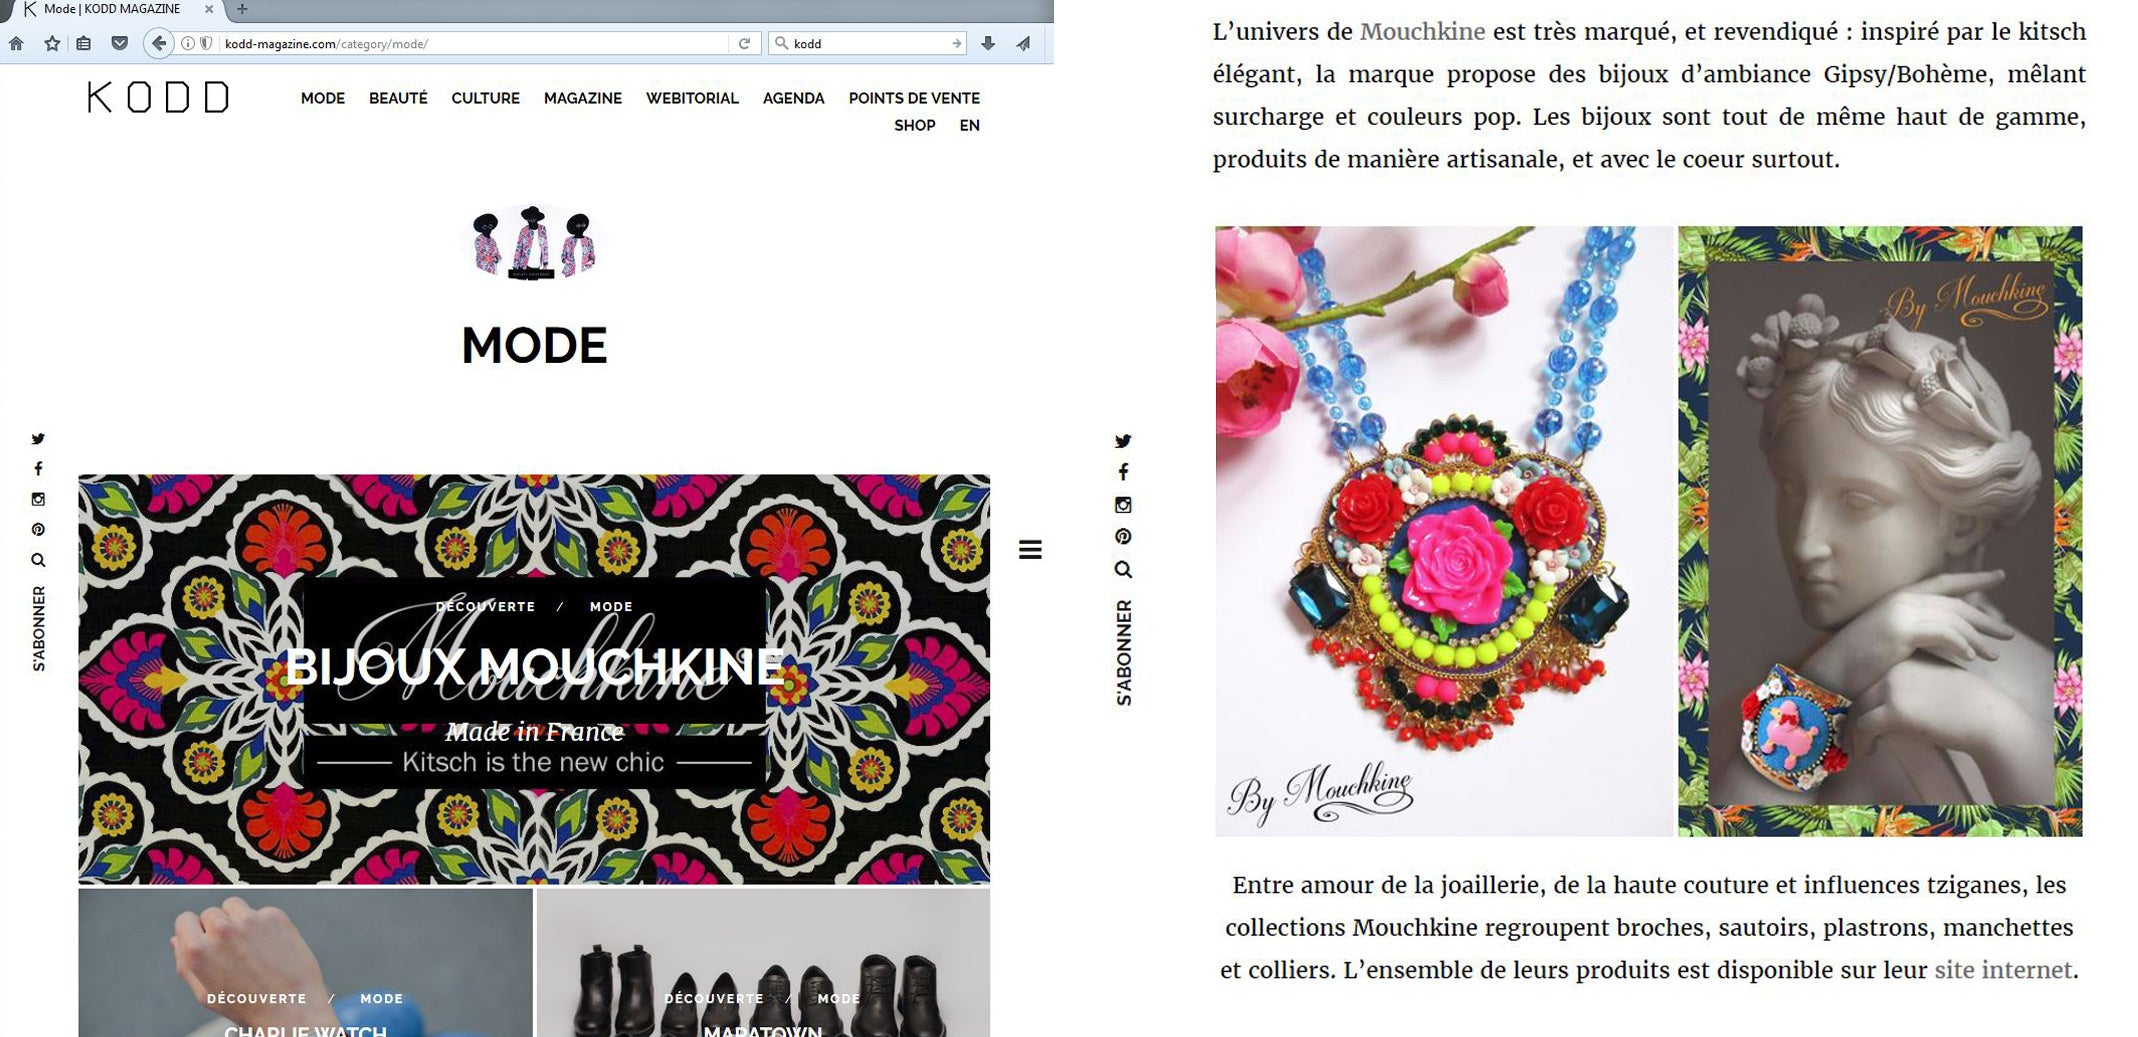 article élogieux sur le site mode et couture de Kood Magazine - fashion trends site Kood magazine article about Mouchkine Jewelry.